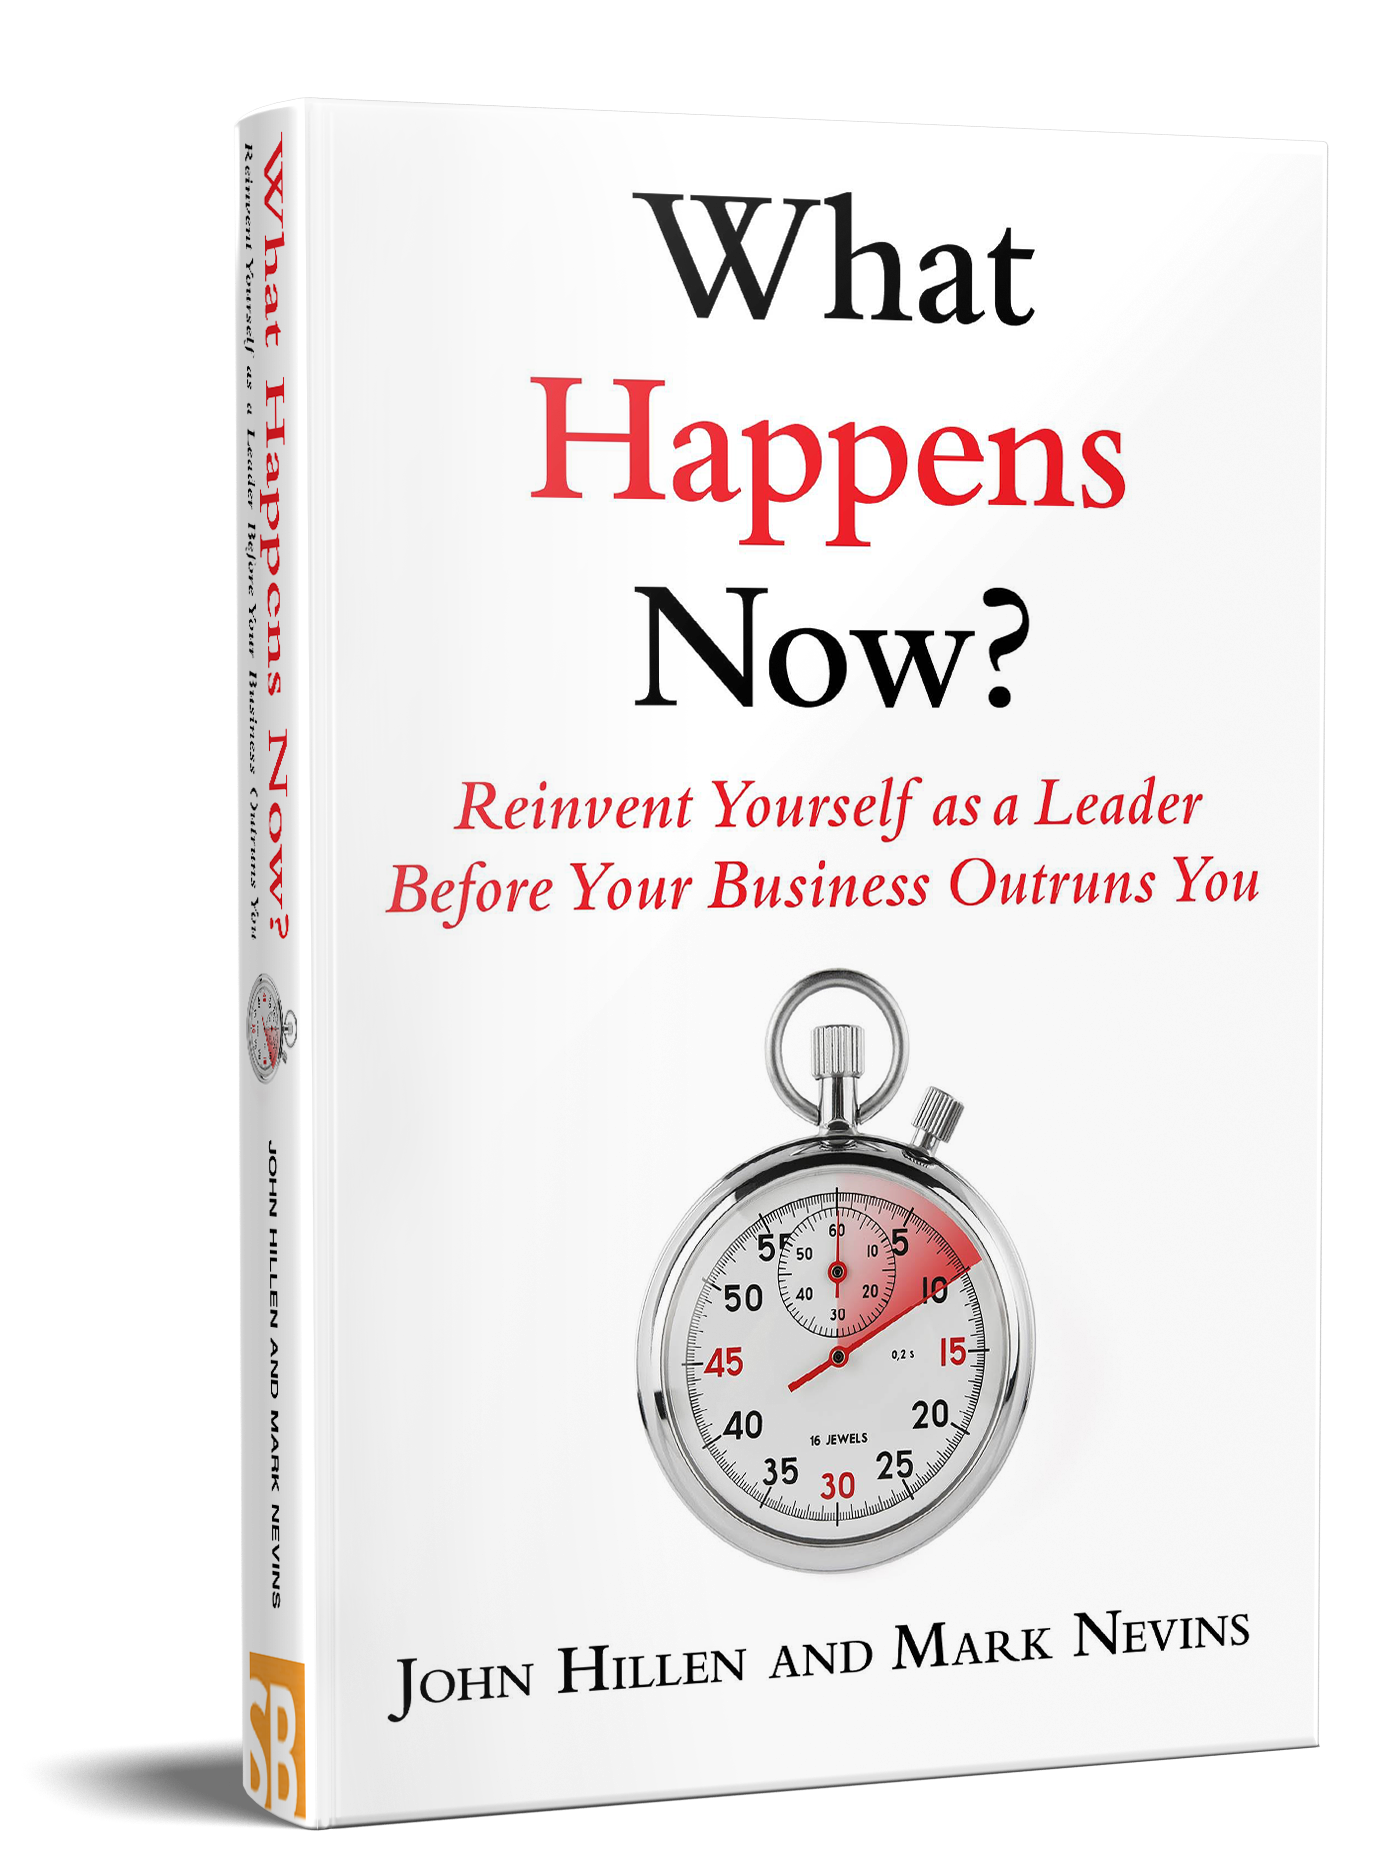 What Happens Now Book Reinvent Yourself As A Leader